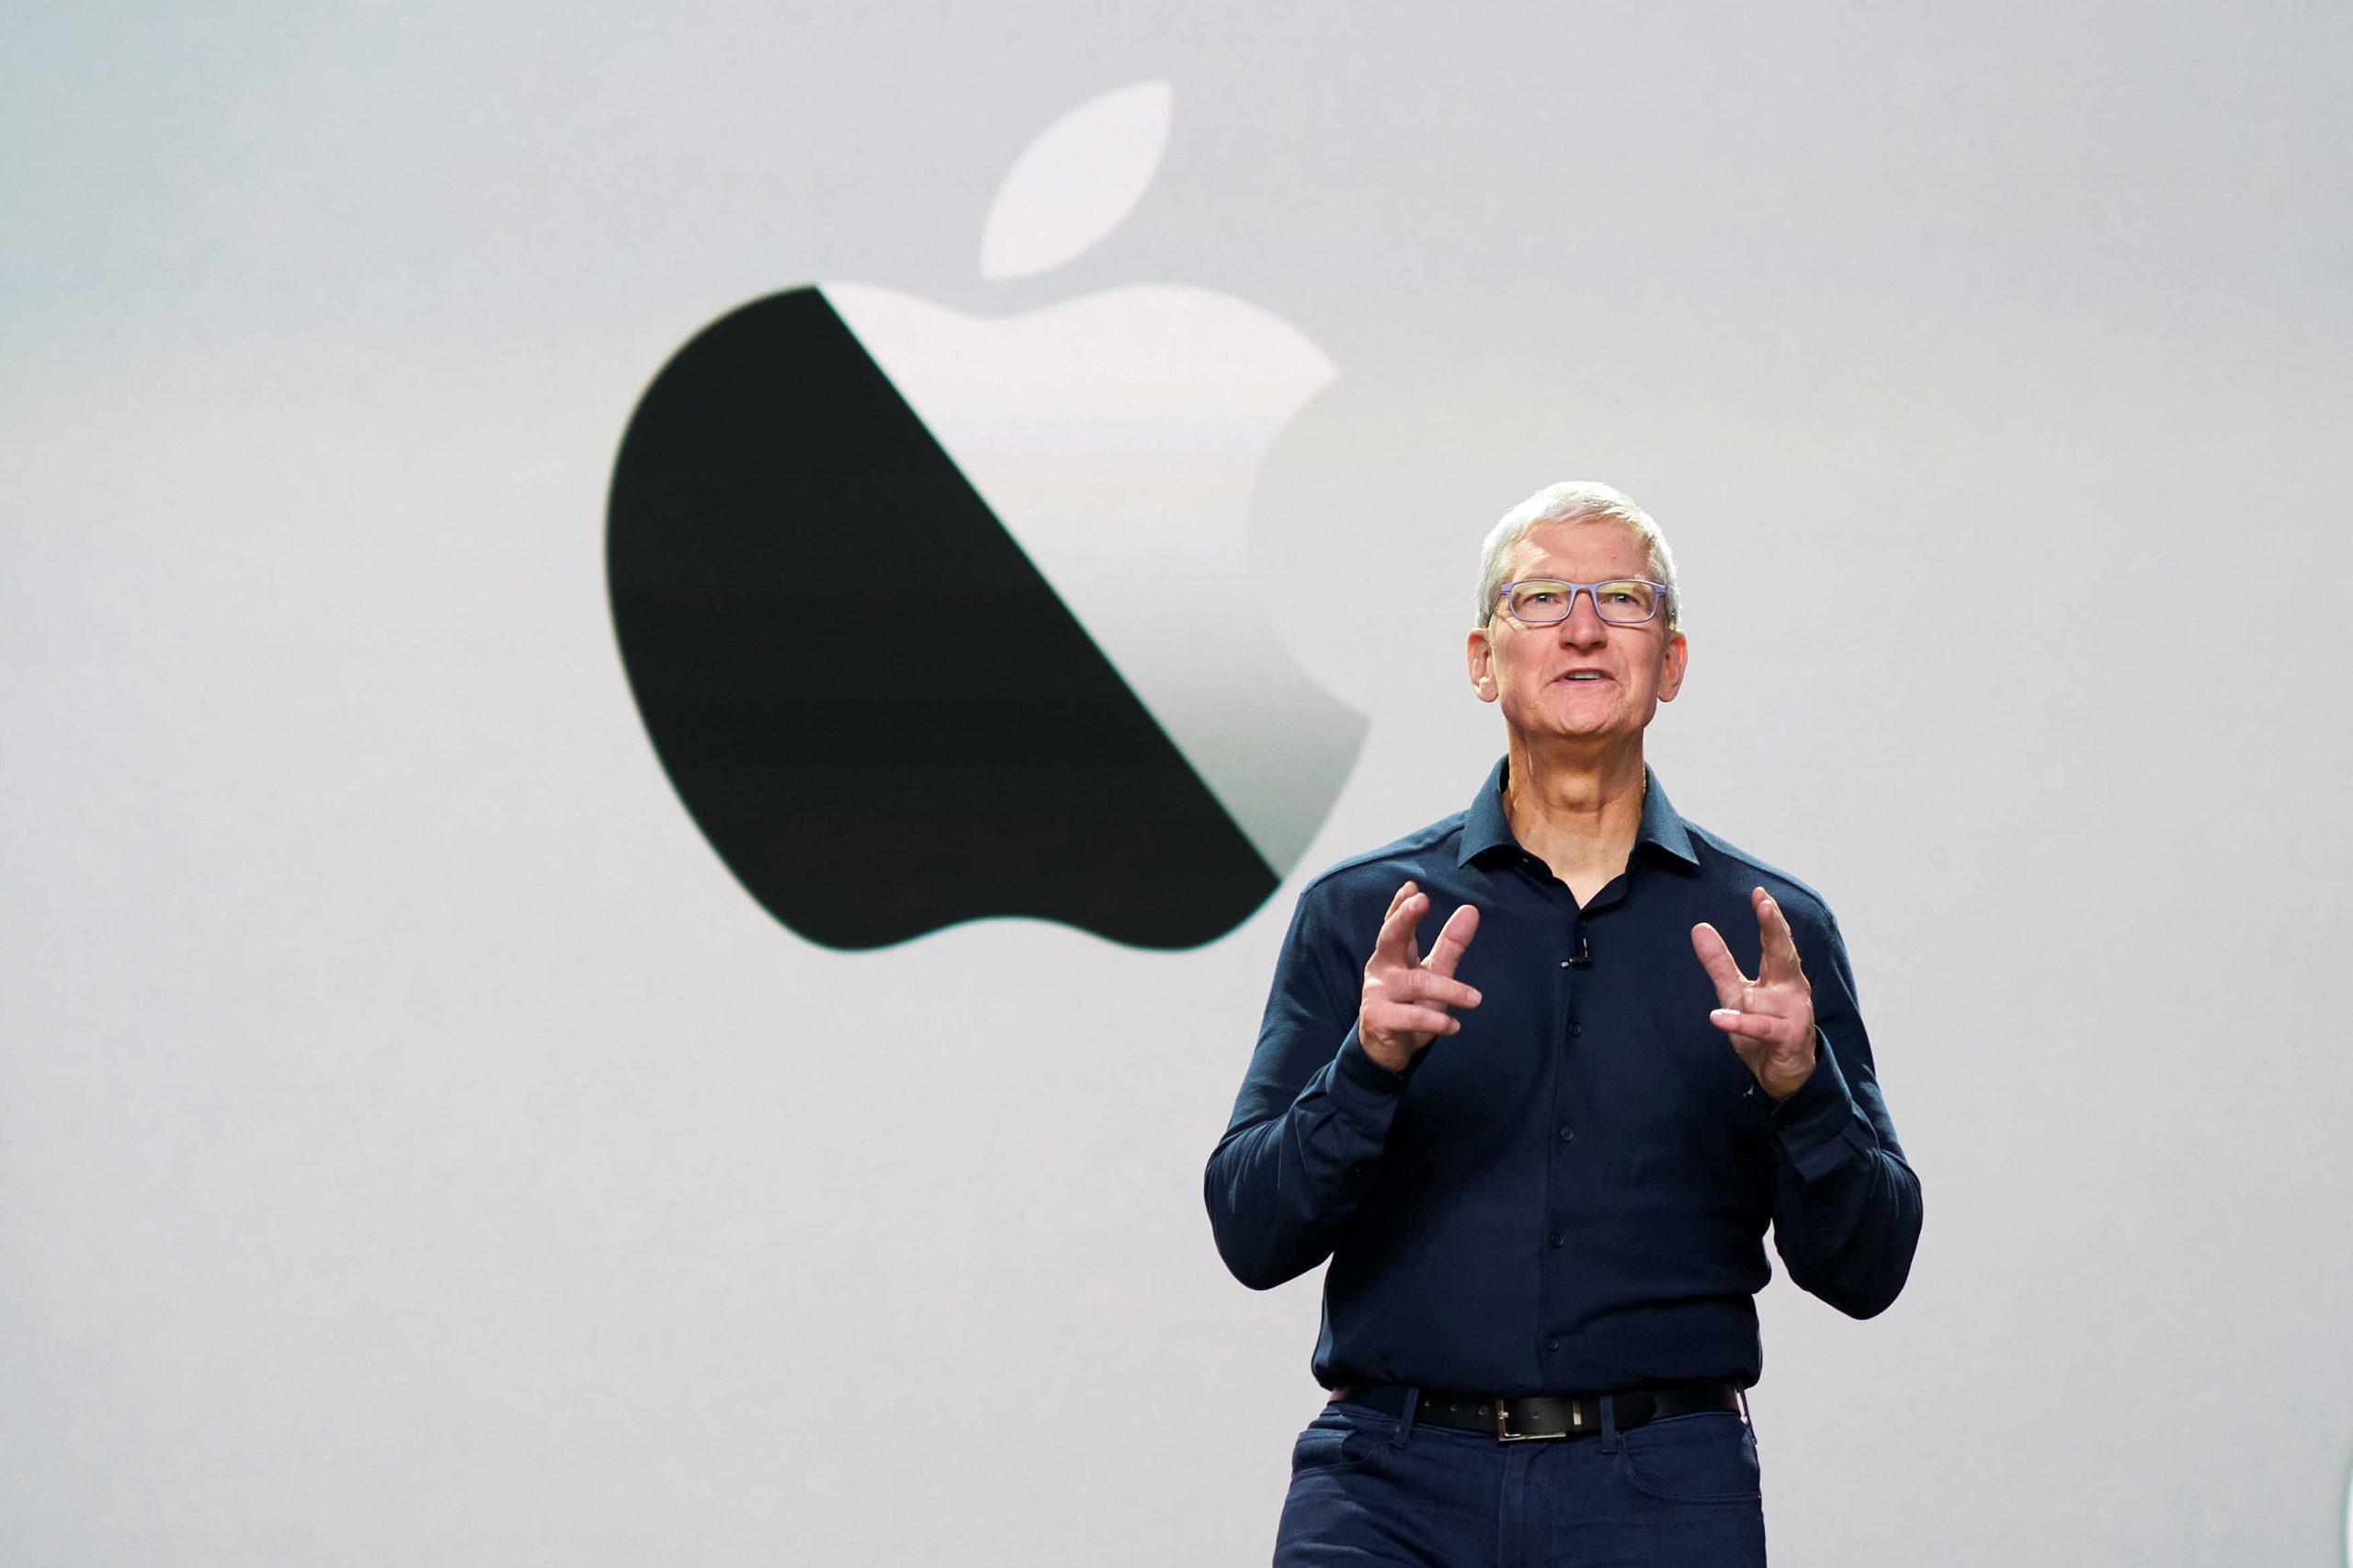 The Apple One bundle, long rumored, will excite Wall Street